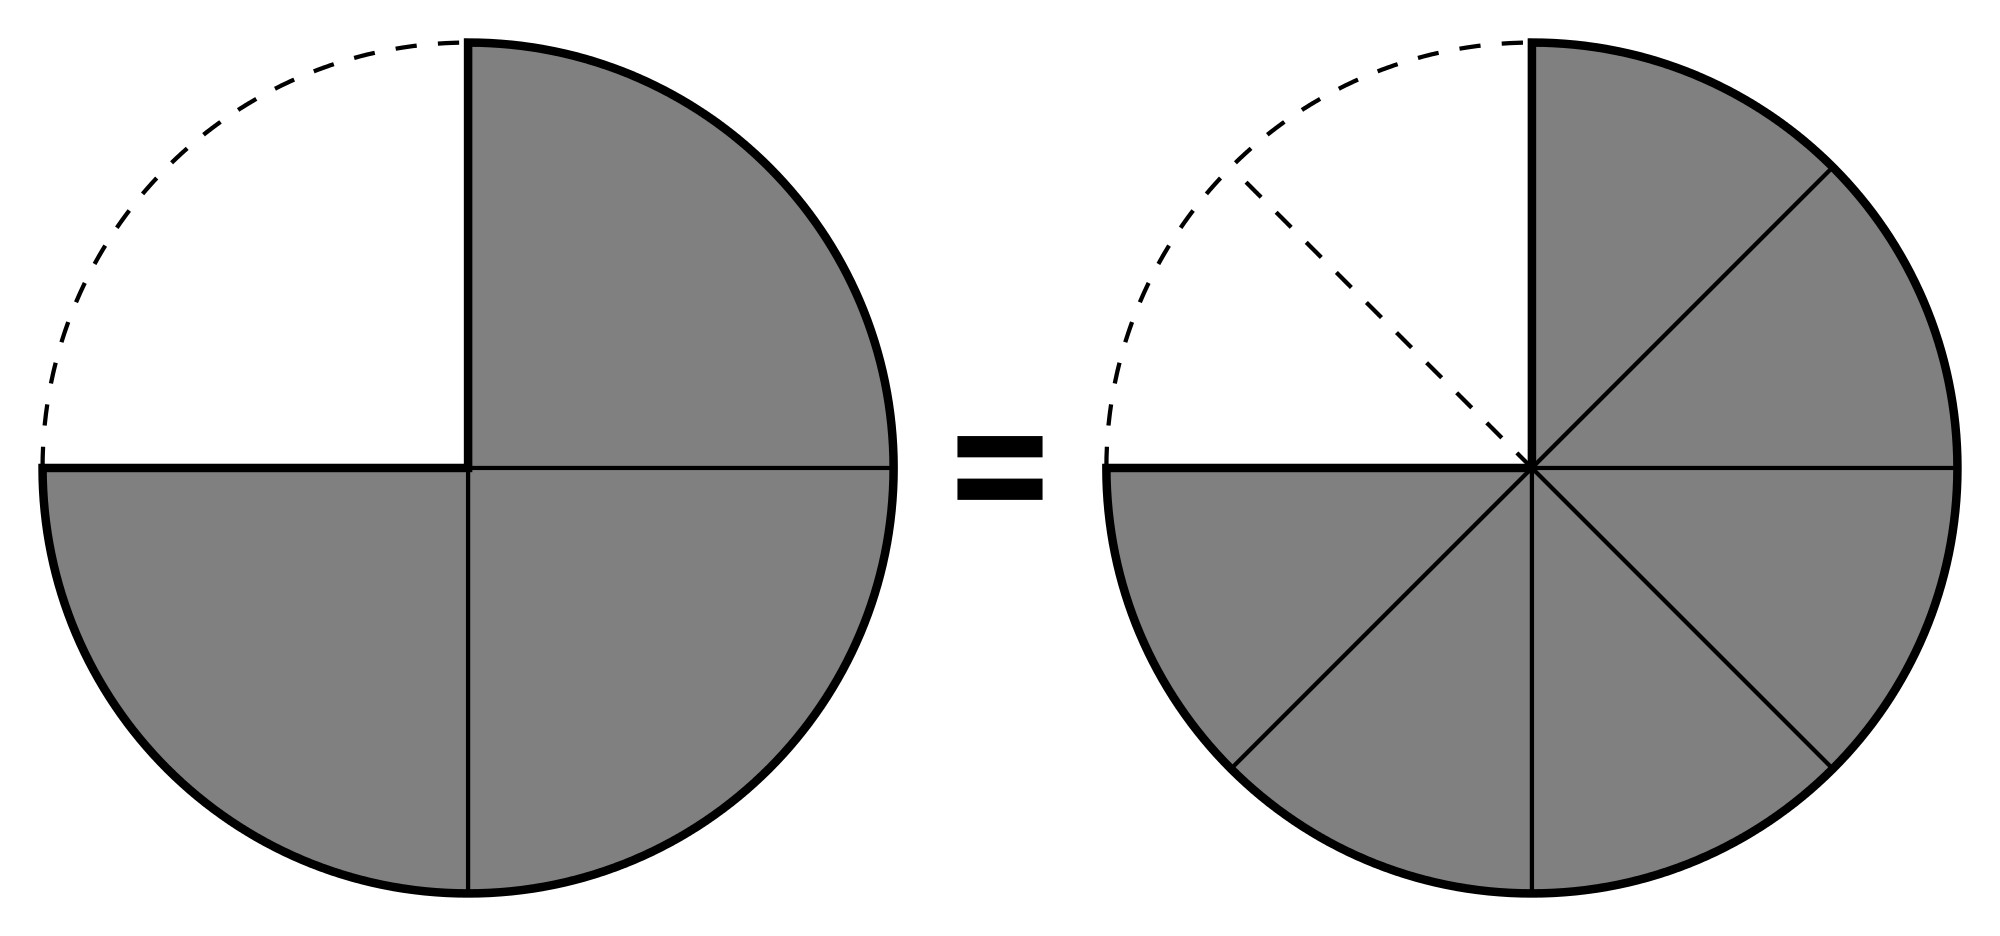 Fraction clipart pie chart. File example svg wikimedia